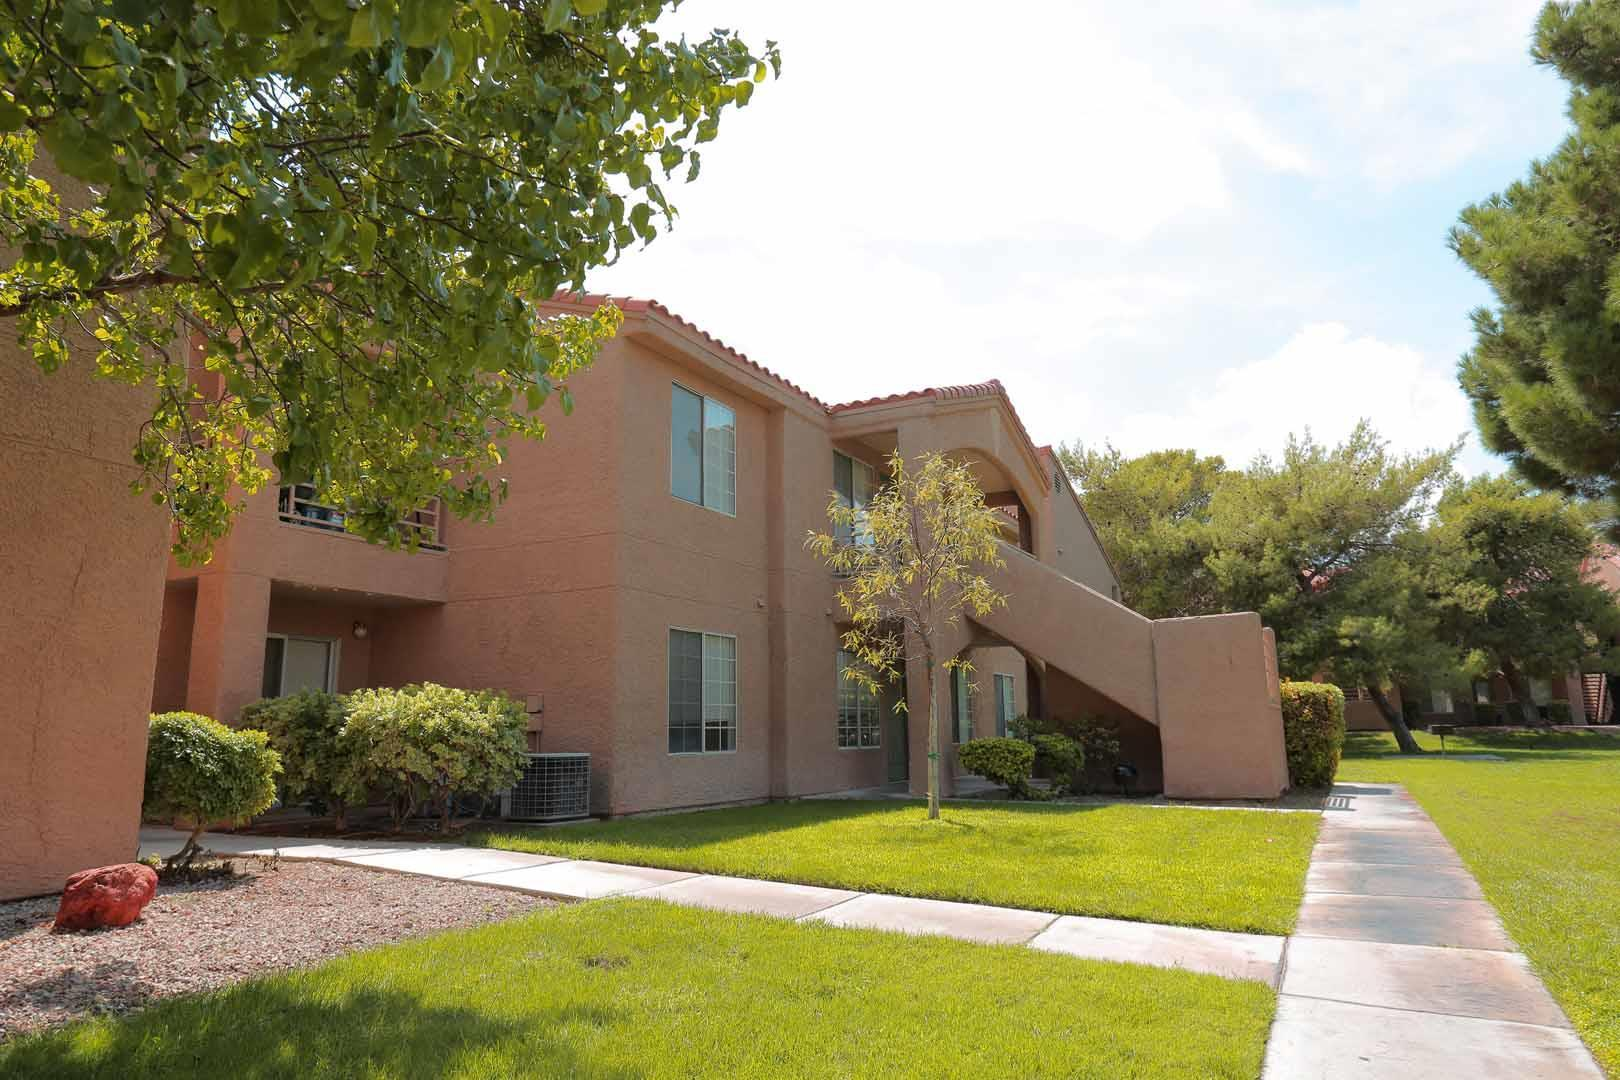 Las Vegas apartments offer beautiful landscaped community